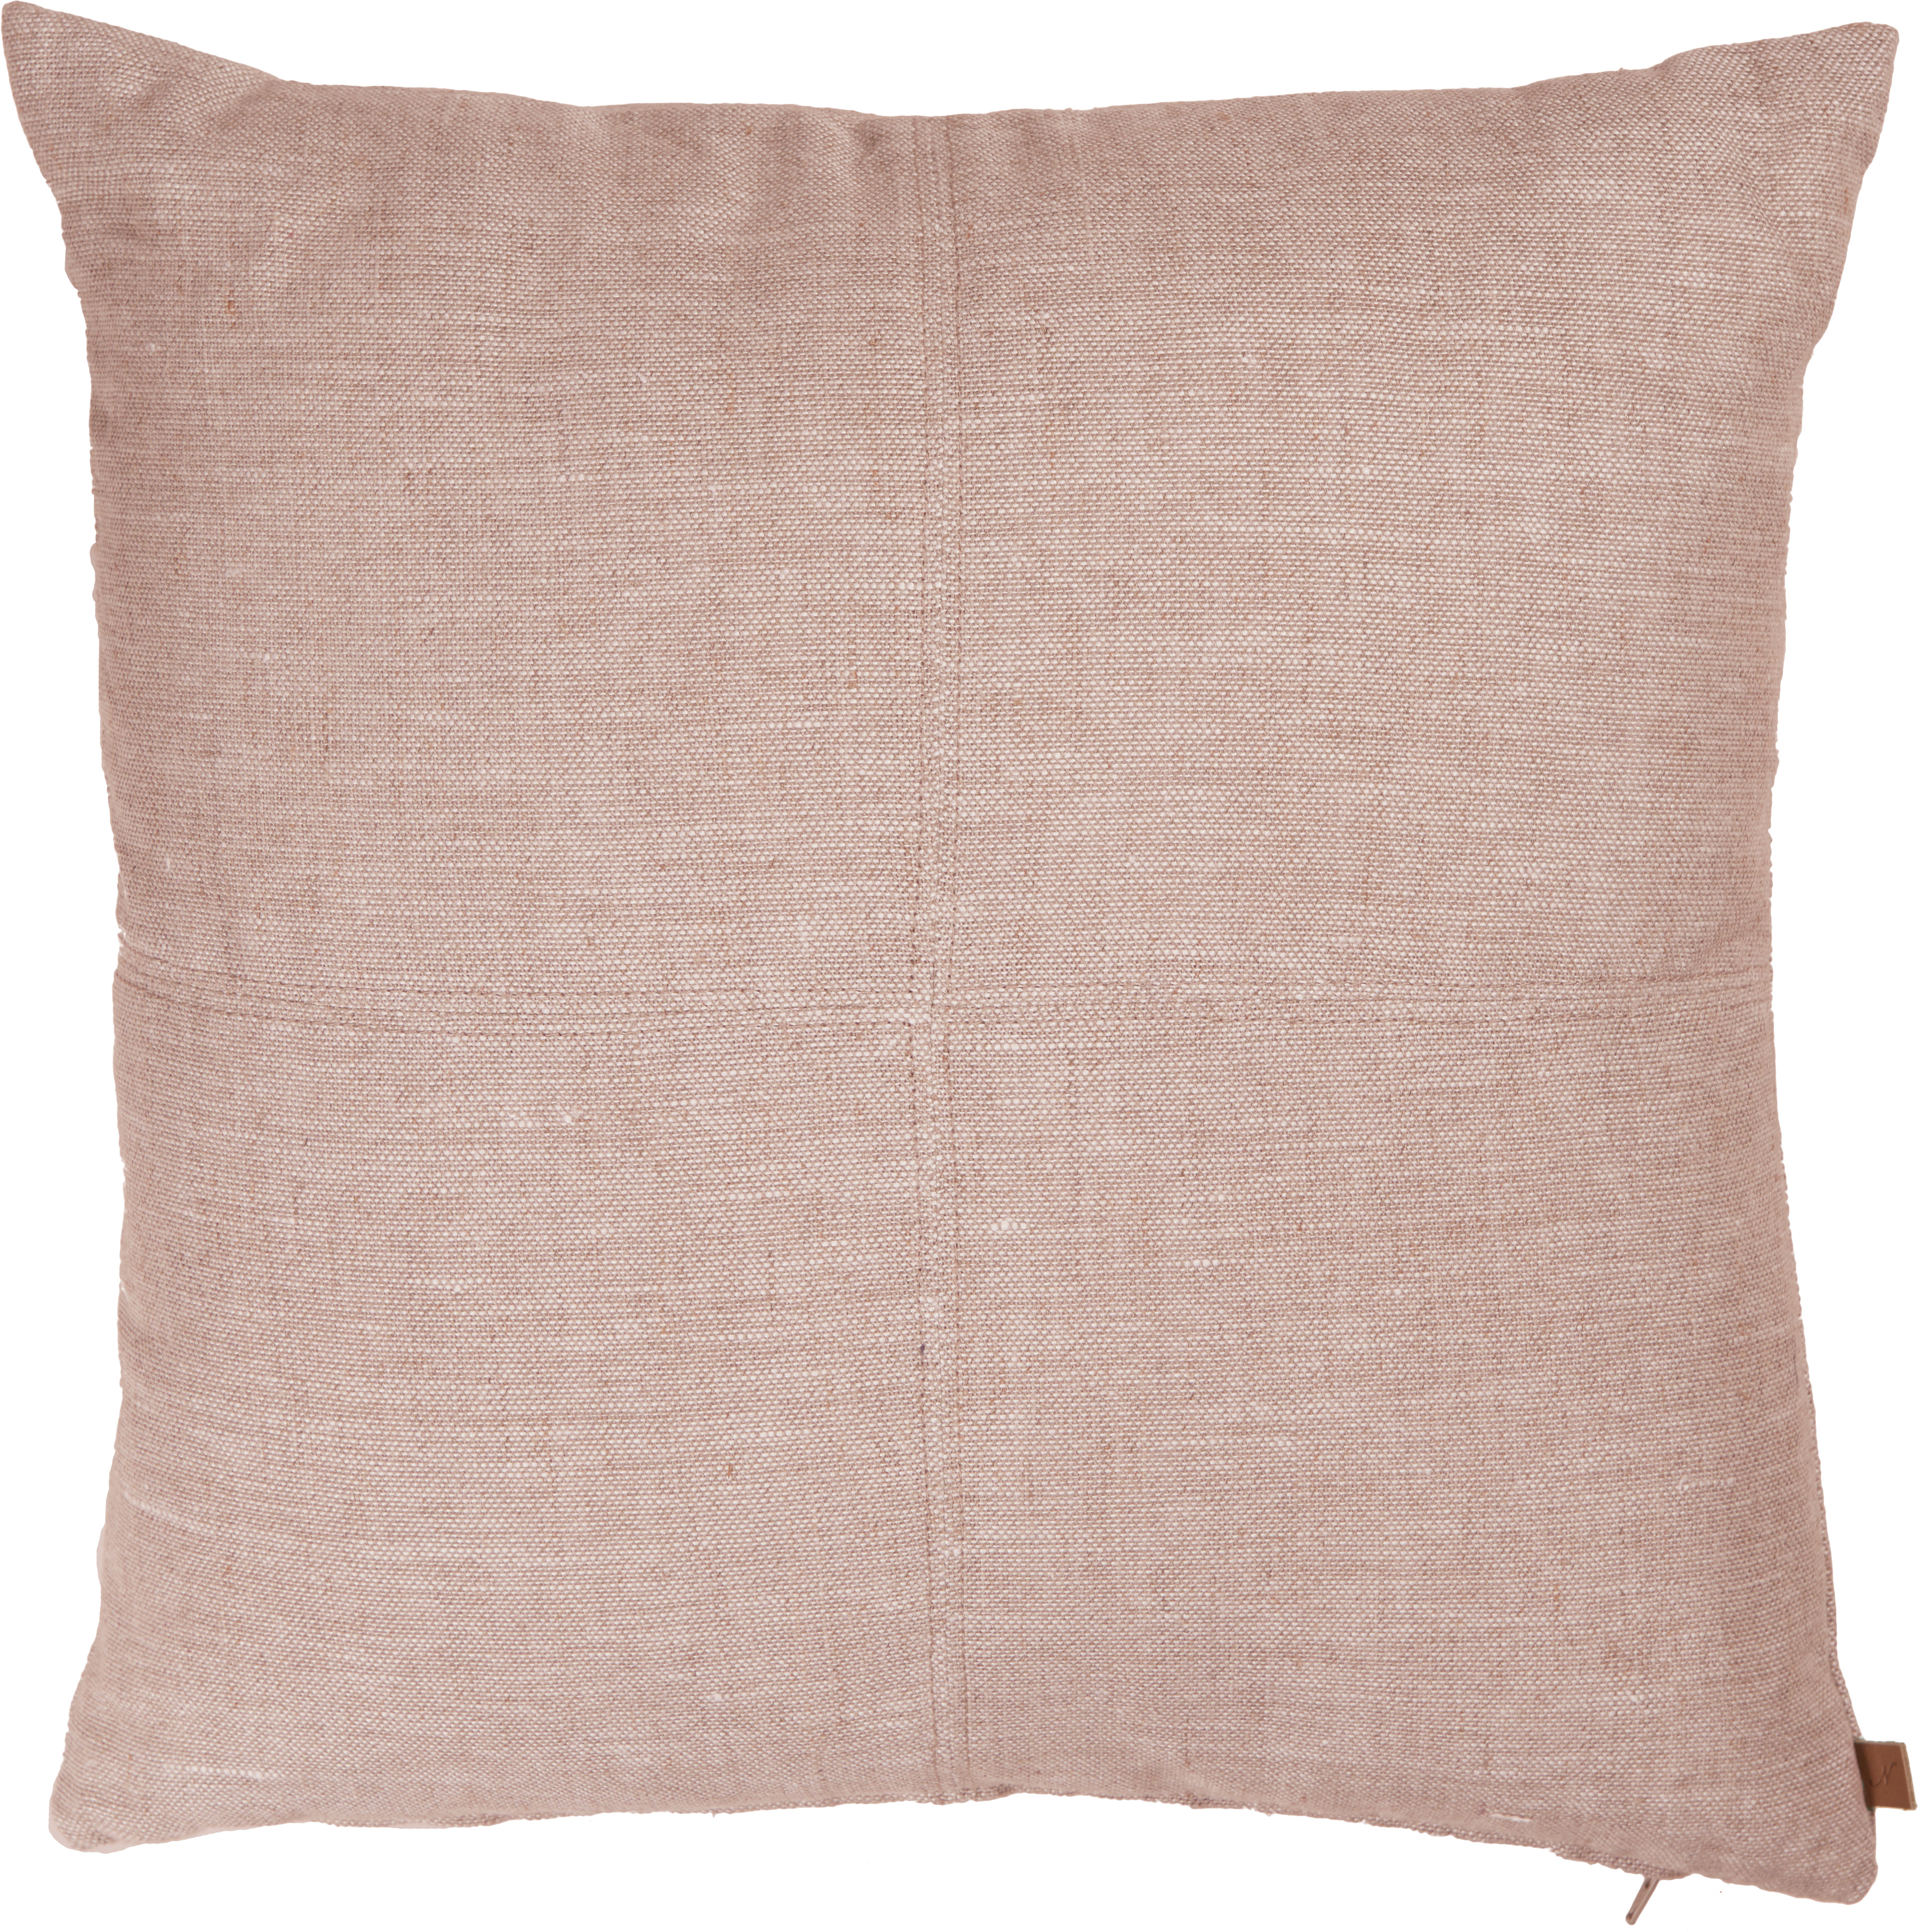 Beatrice Cushion 43x43cm, Imogen Oyster Pink